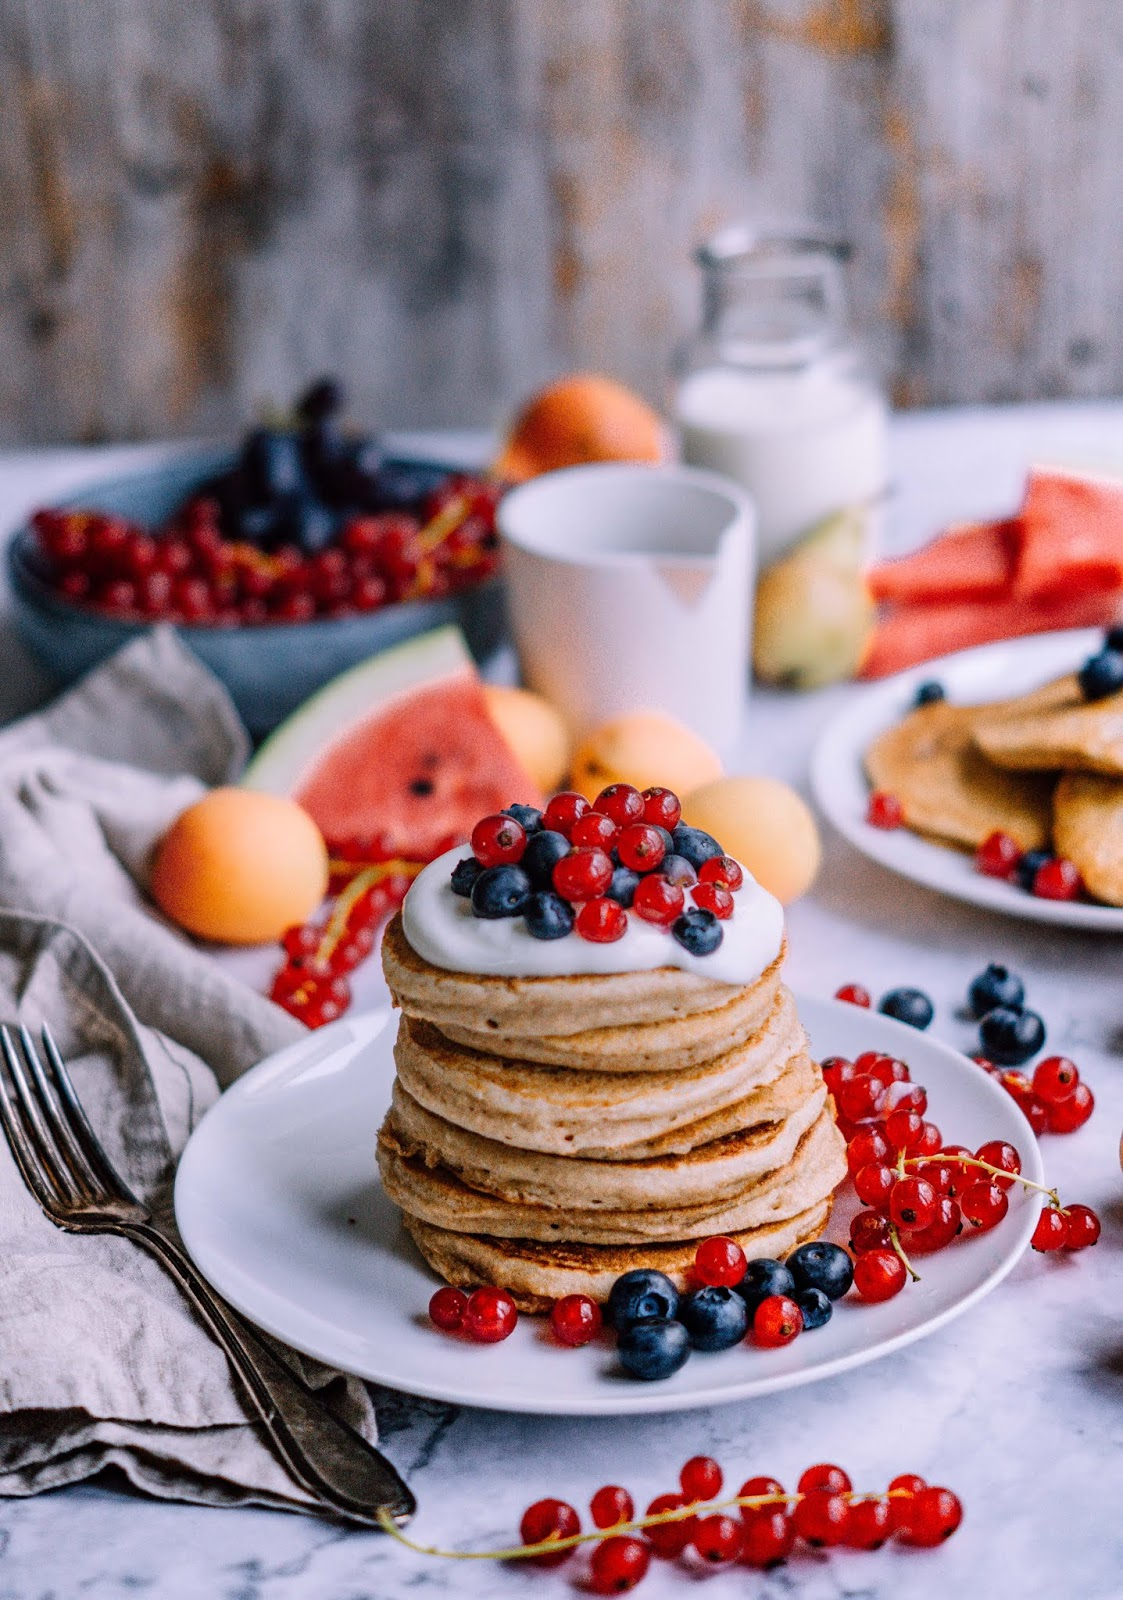 Healthy Wholewheat Pancakes. Need more recipes? 20 Tasty And Nourishing, Yet Quick Vegan Breakfast Recipes Ideas vegan breakfast healthy | breakfast vegan recipes | healthy vegan breakfast weightloss | easy vegan breakfast | breakfast recipes vegan #breakfast #vegan #veganideas #tasty